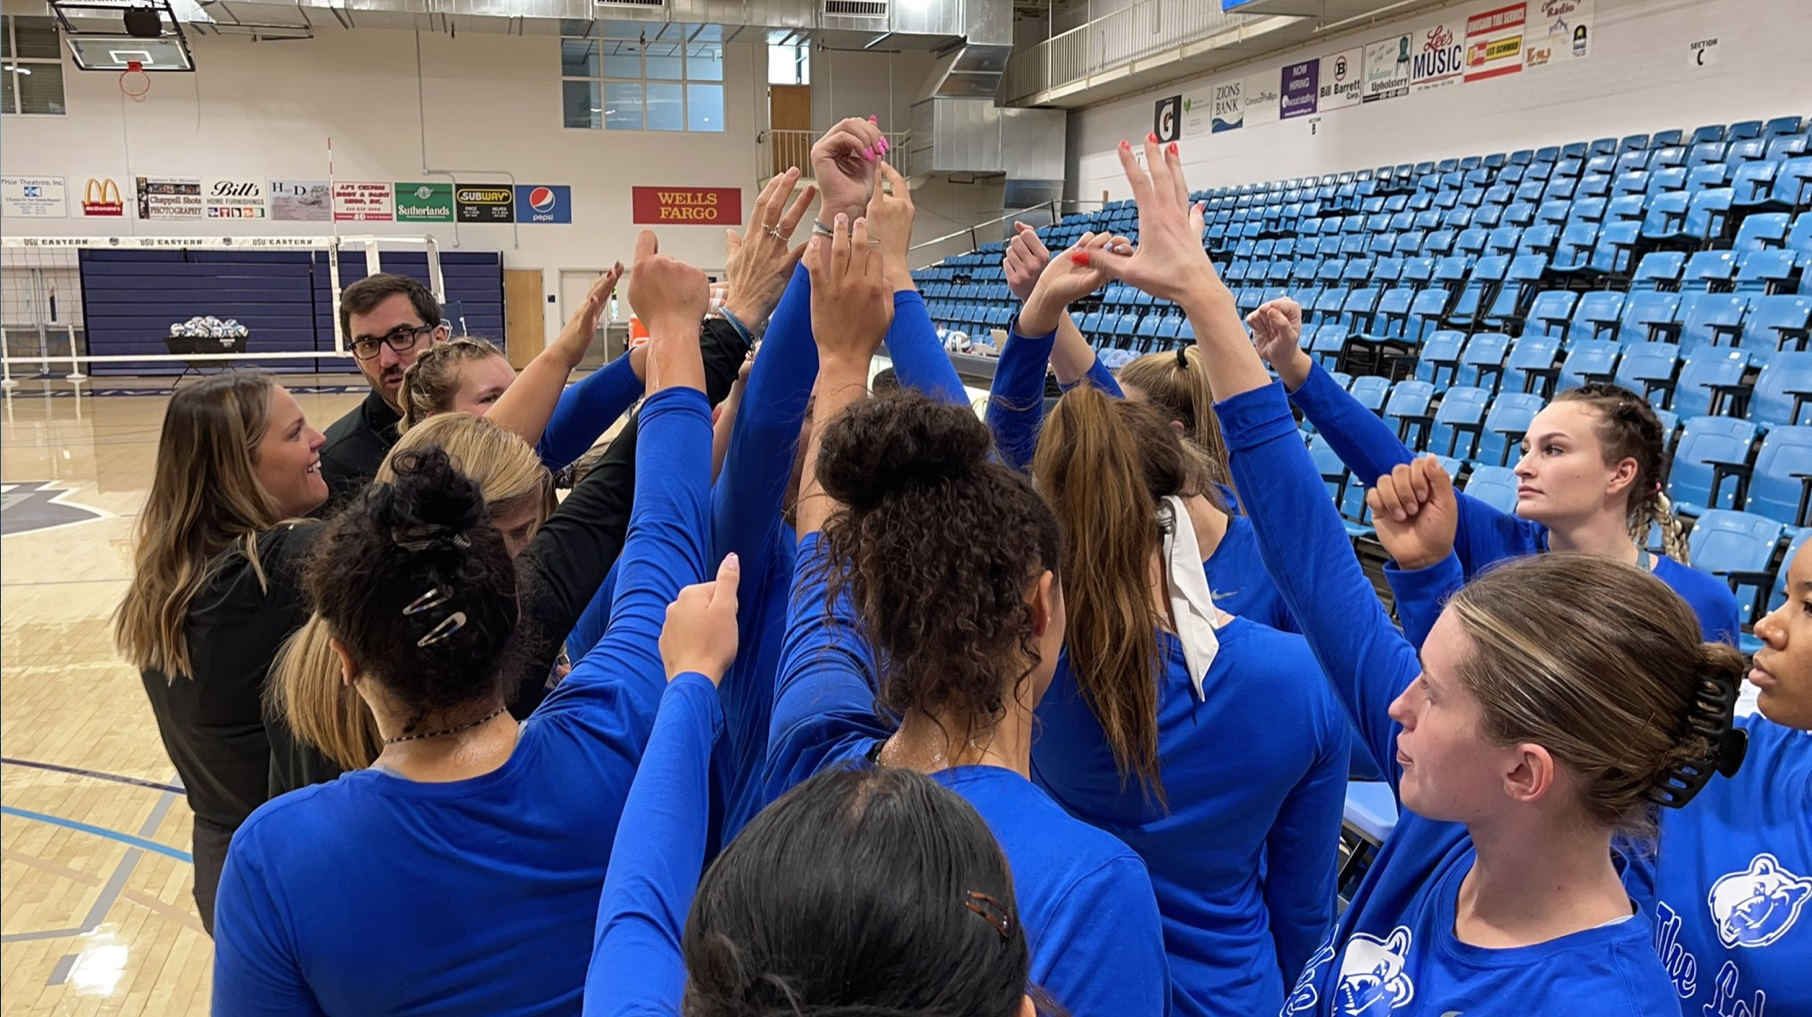 Volleyball players huddle together with raised hands